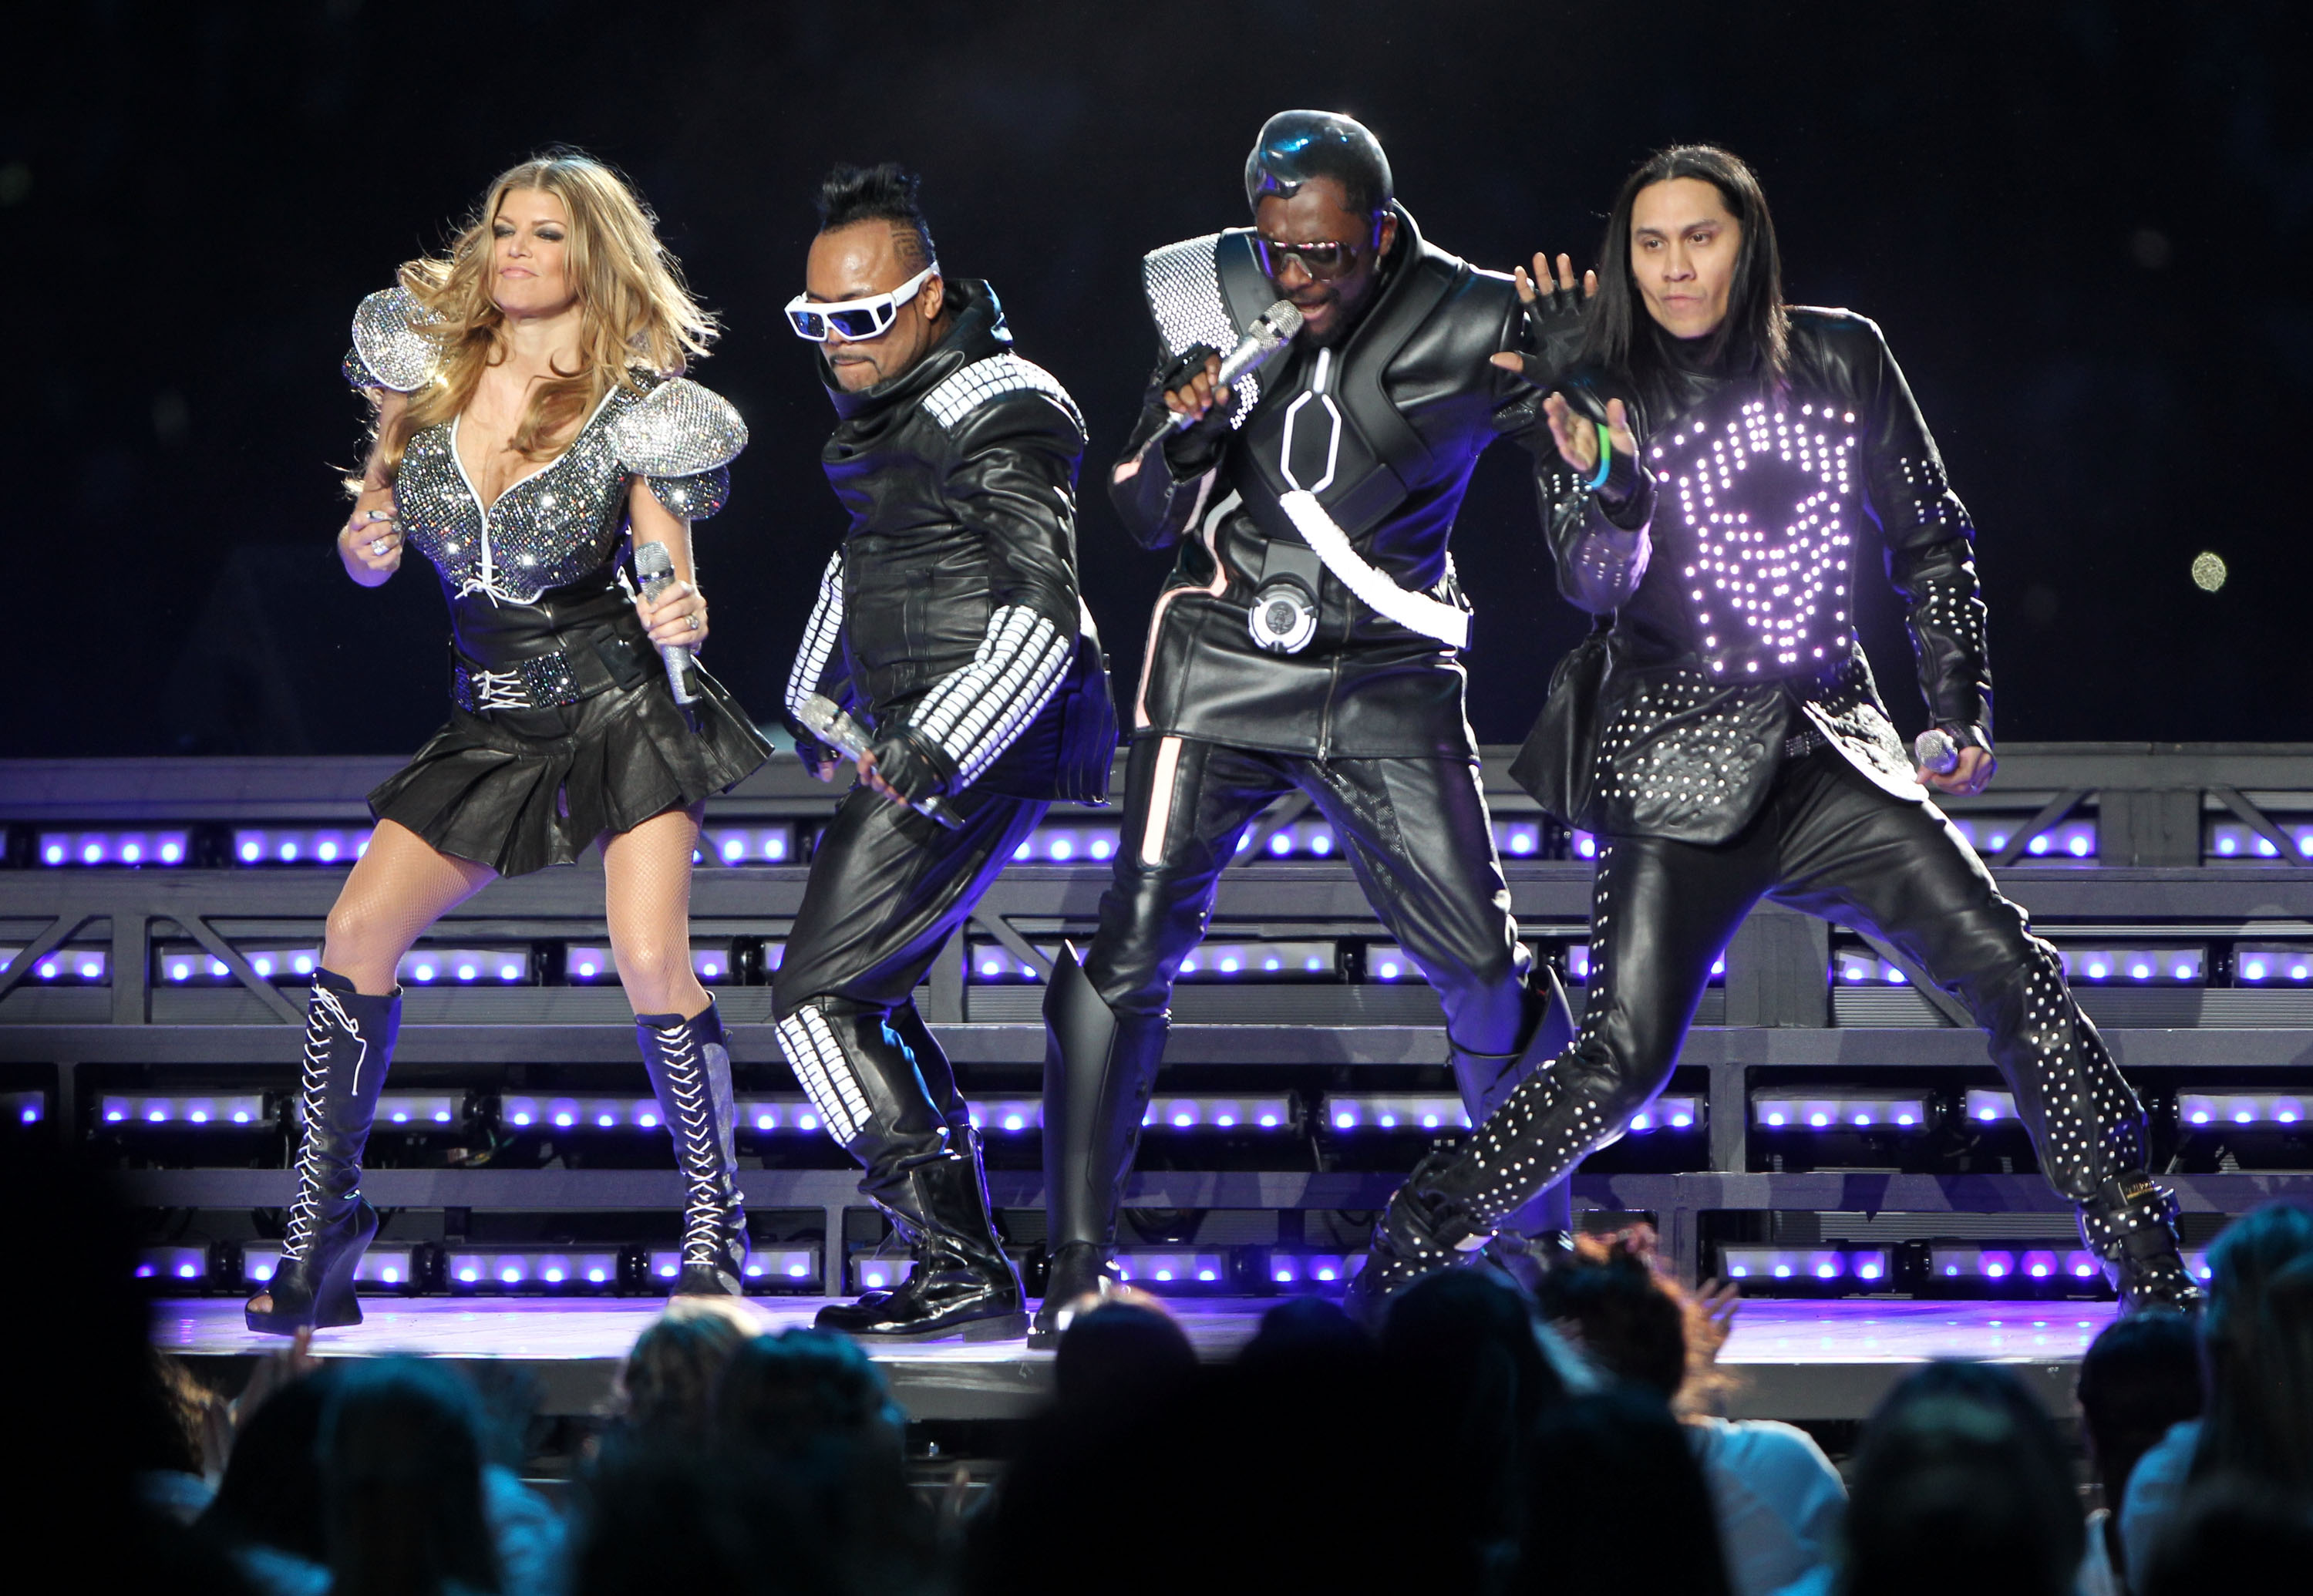 the definitive ranking of the last 5 super bowl halftime shows – is